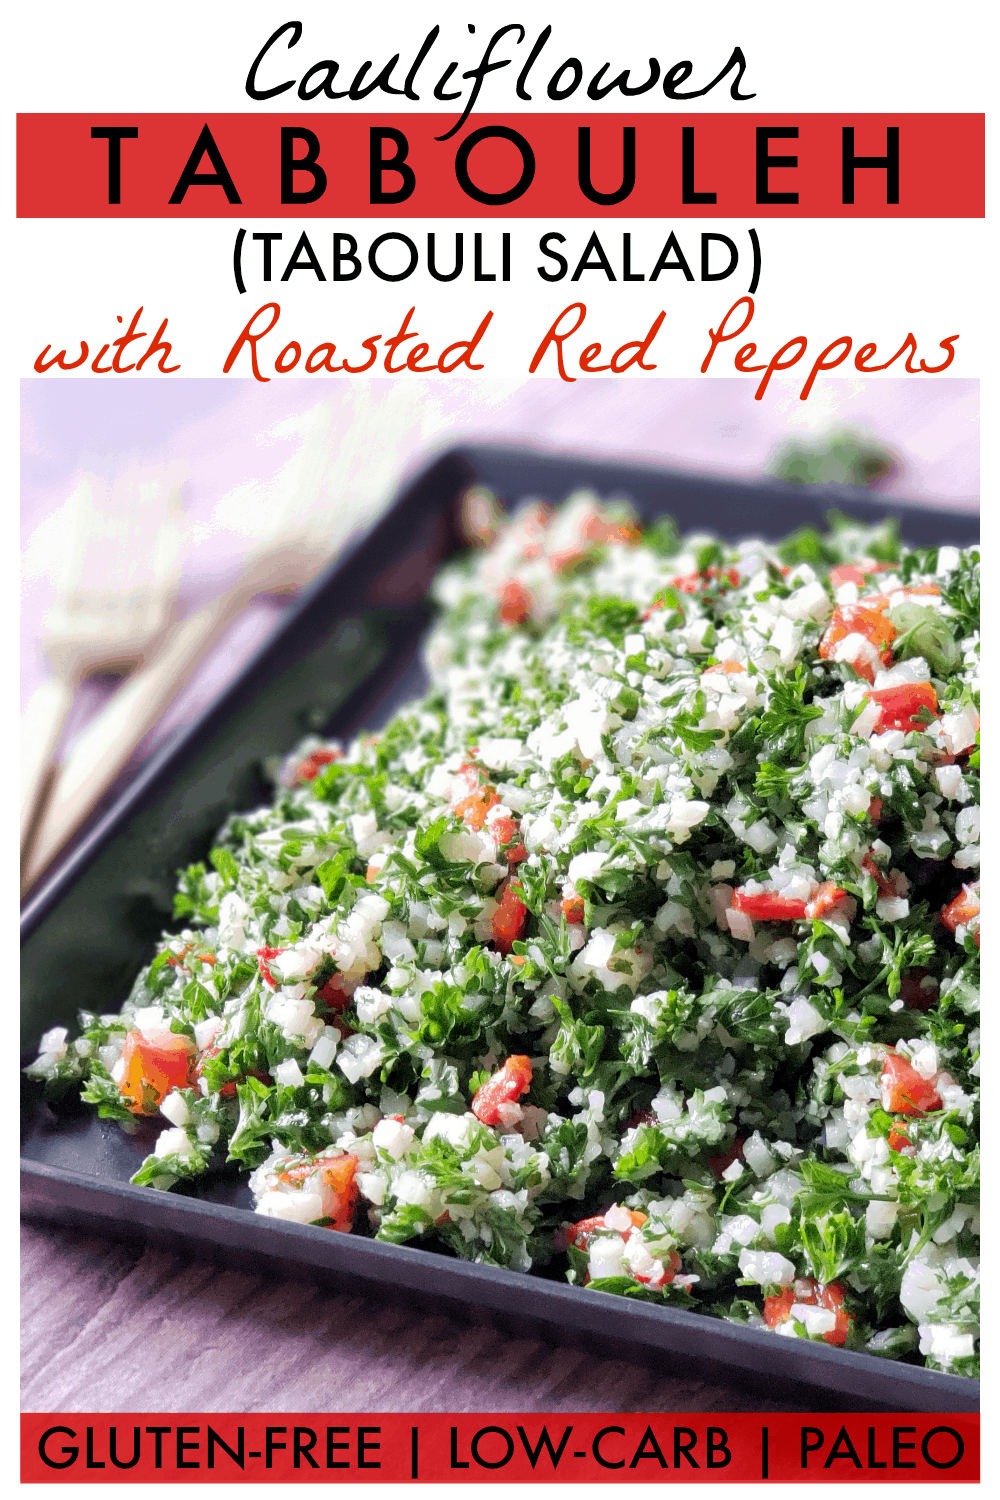 Roasted red peppers in lieu of tomatoes makes this cauliflower tabbouleh unique! It\'s as fresh and flavorful as traditional Lebanese tabbouleh (tabouli salad), but cauliflower rice instead of bulgar wheat means it\'s gluten-free, low-carb, paleo, Whole30 and keto-friendly. Pair it with Za\'atar chicken for an easy and delicious meal!